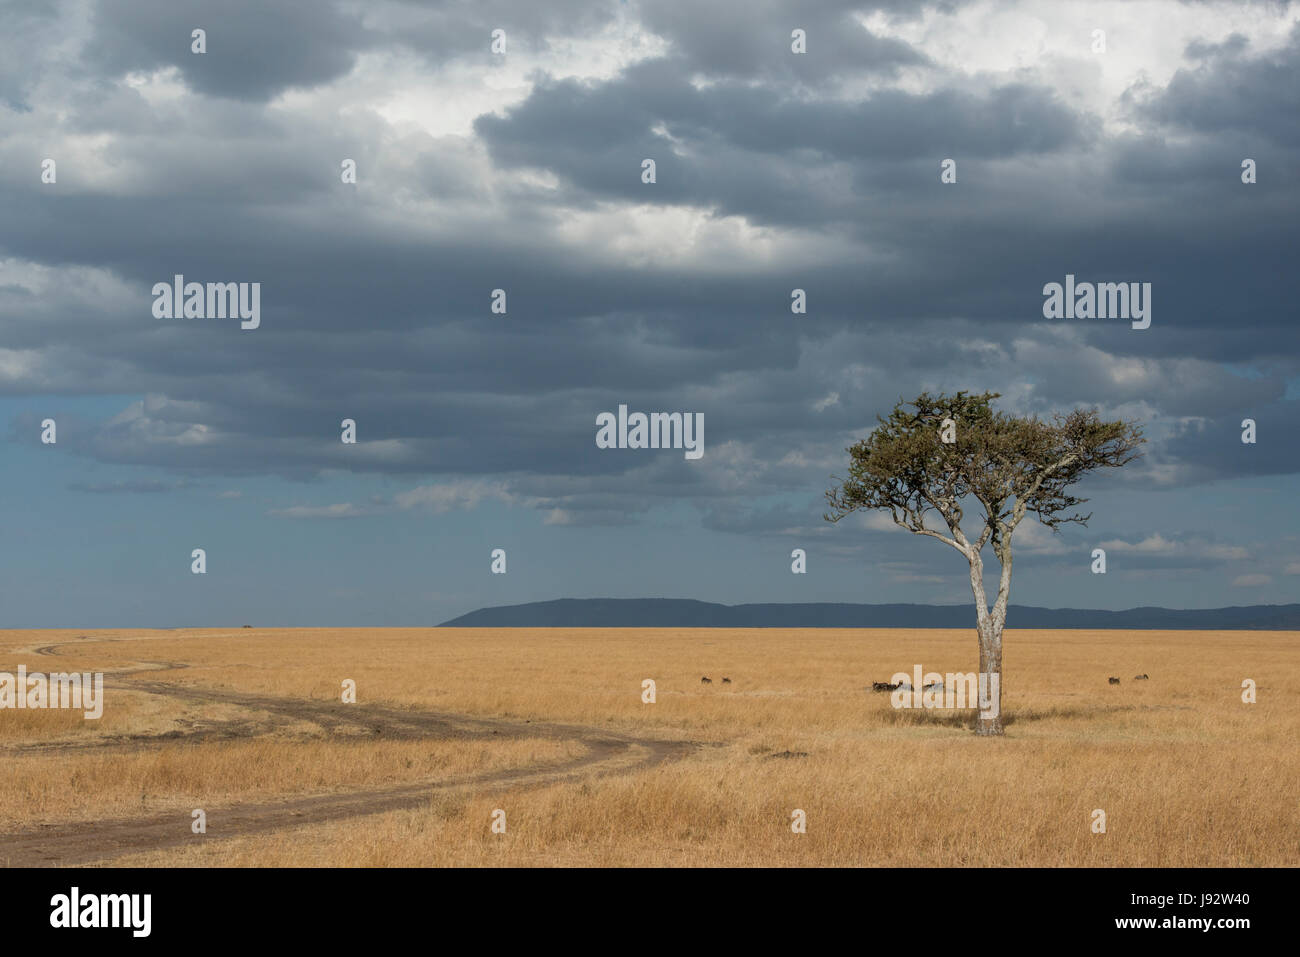 Storm Clouds over savannah - Stock Image